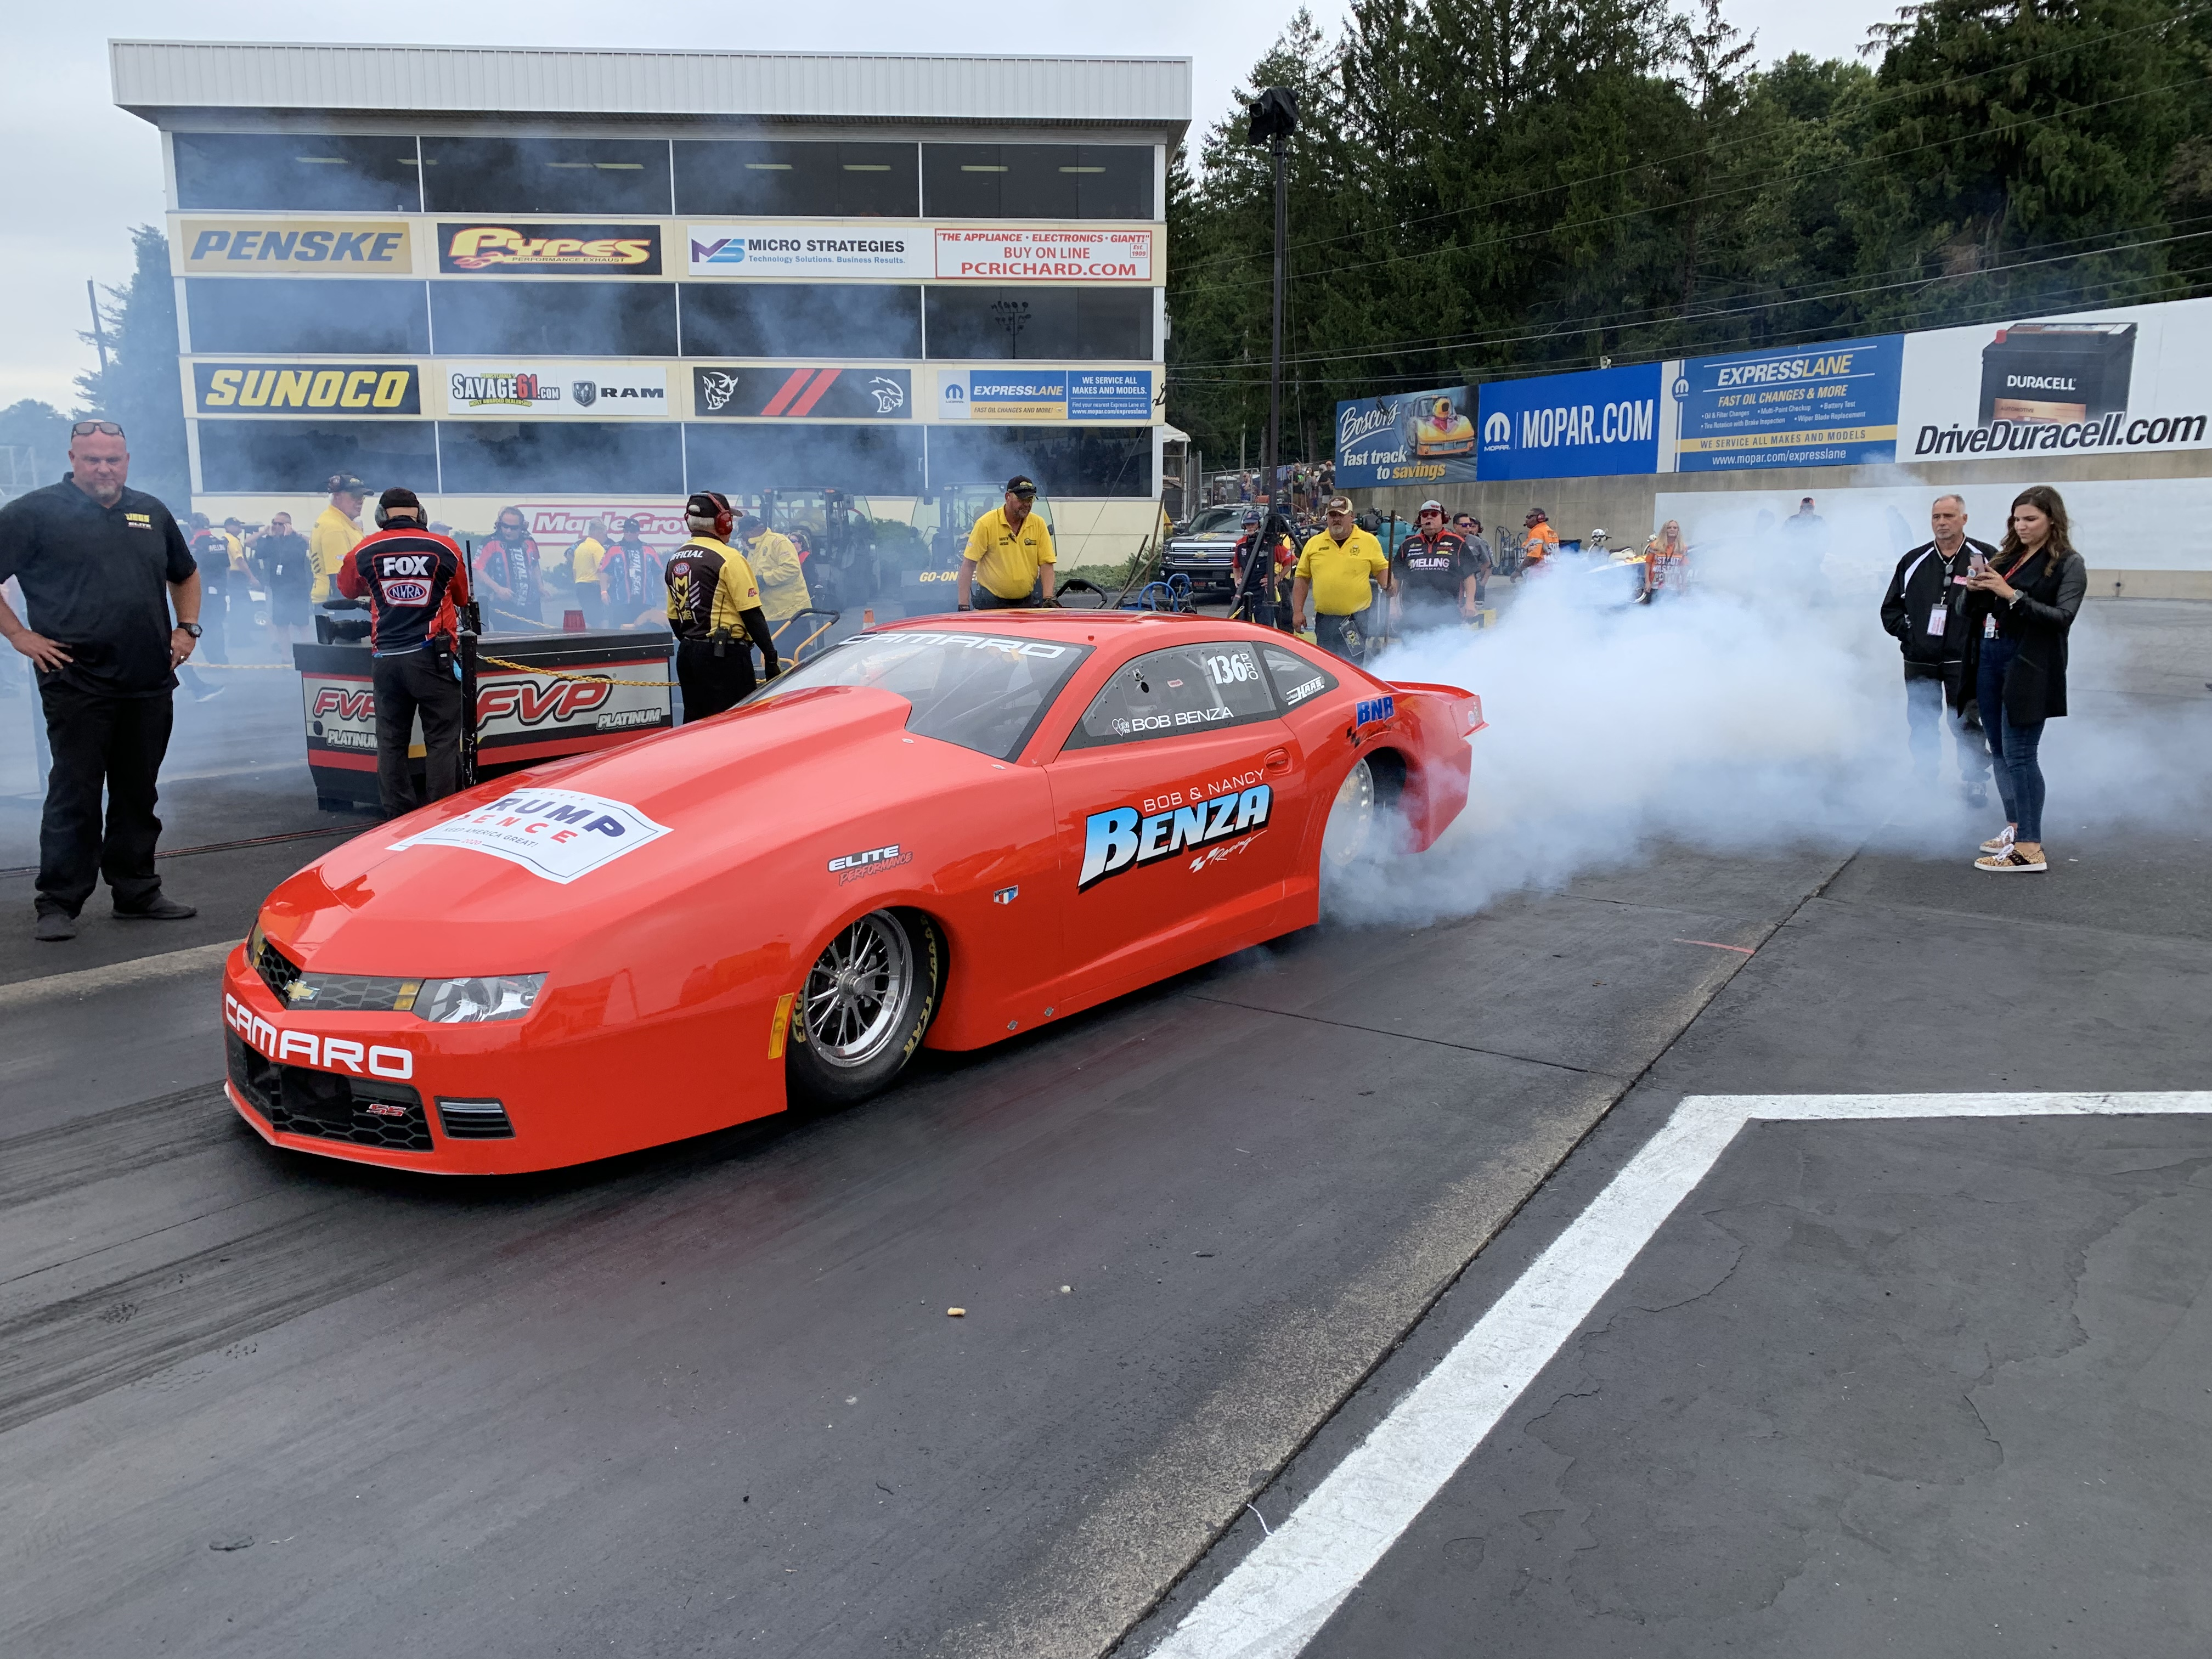 Pro Stock driver Bob Benza warming up his Pro Stock at the 2019 Mopar Express Lane NHRA Nationals presented by Pennzoil